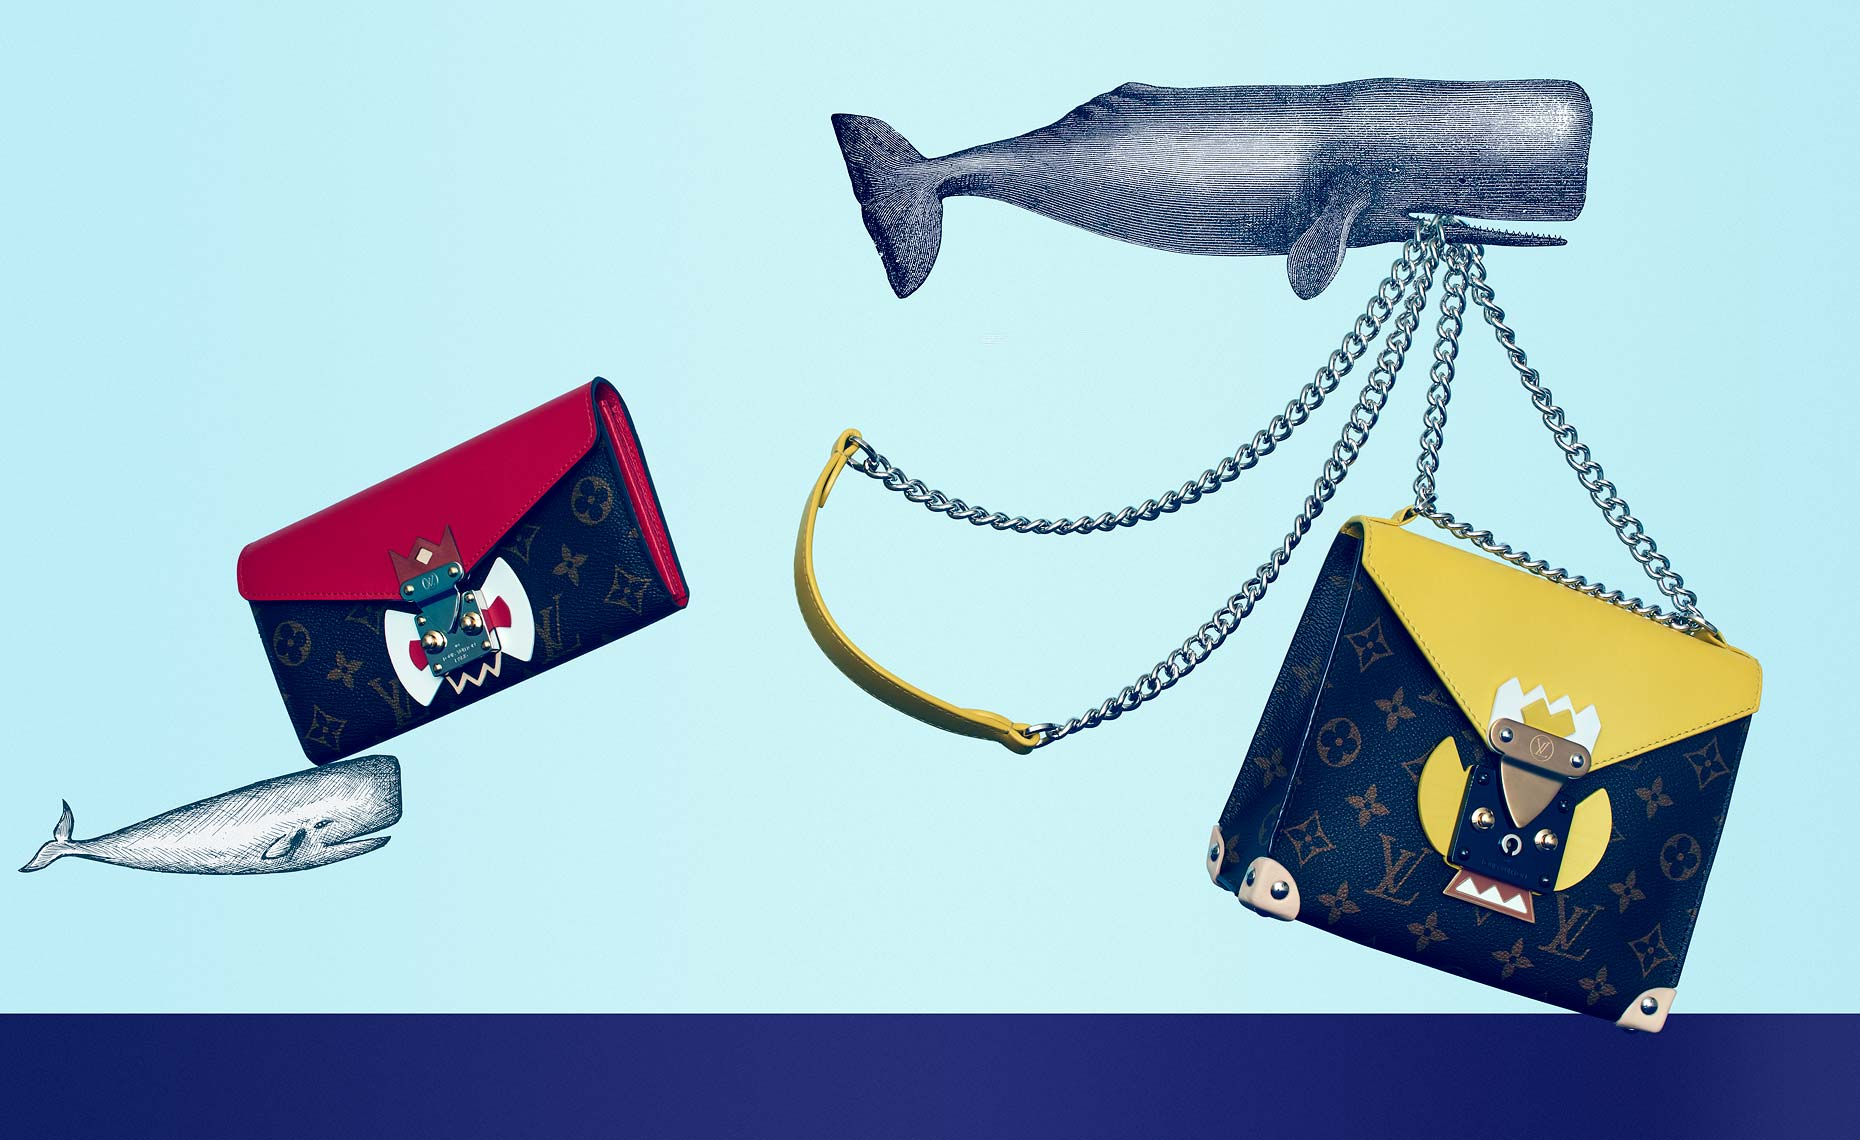 Jeff Stephens | Sea life illustrations with Shoe and Handbags